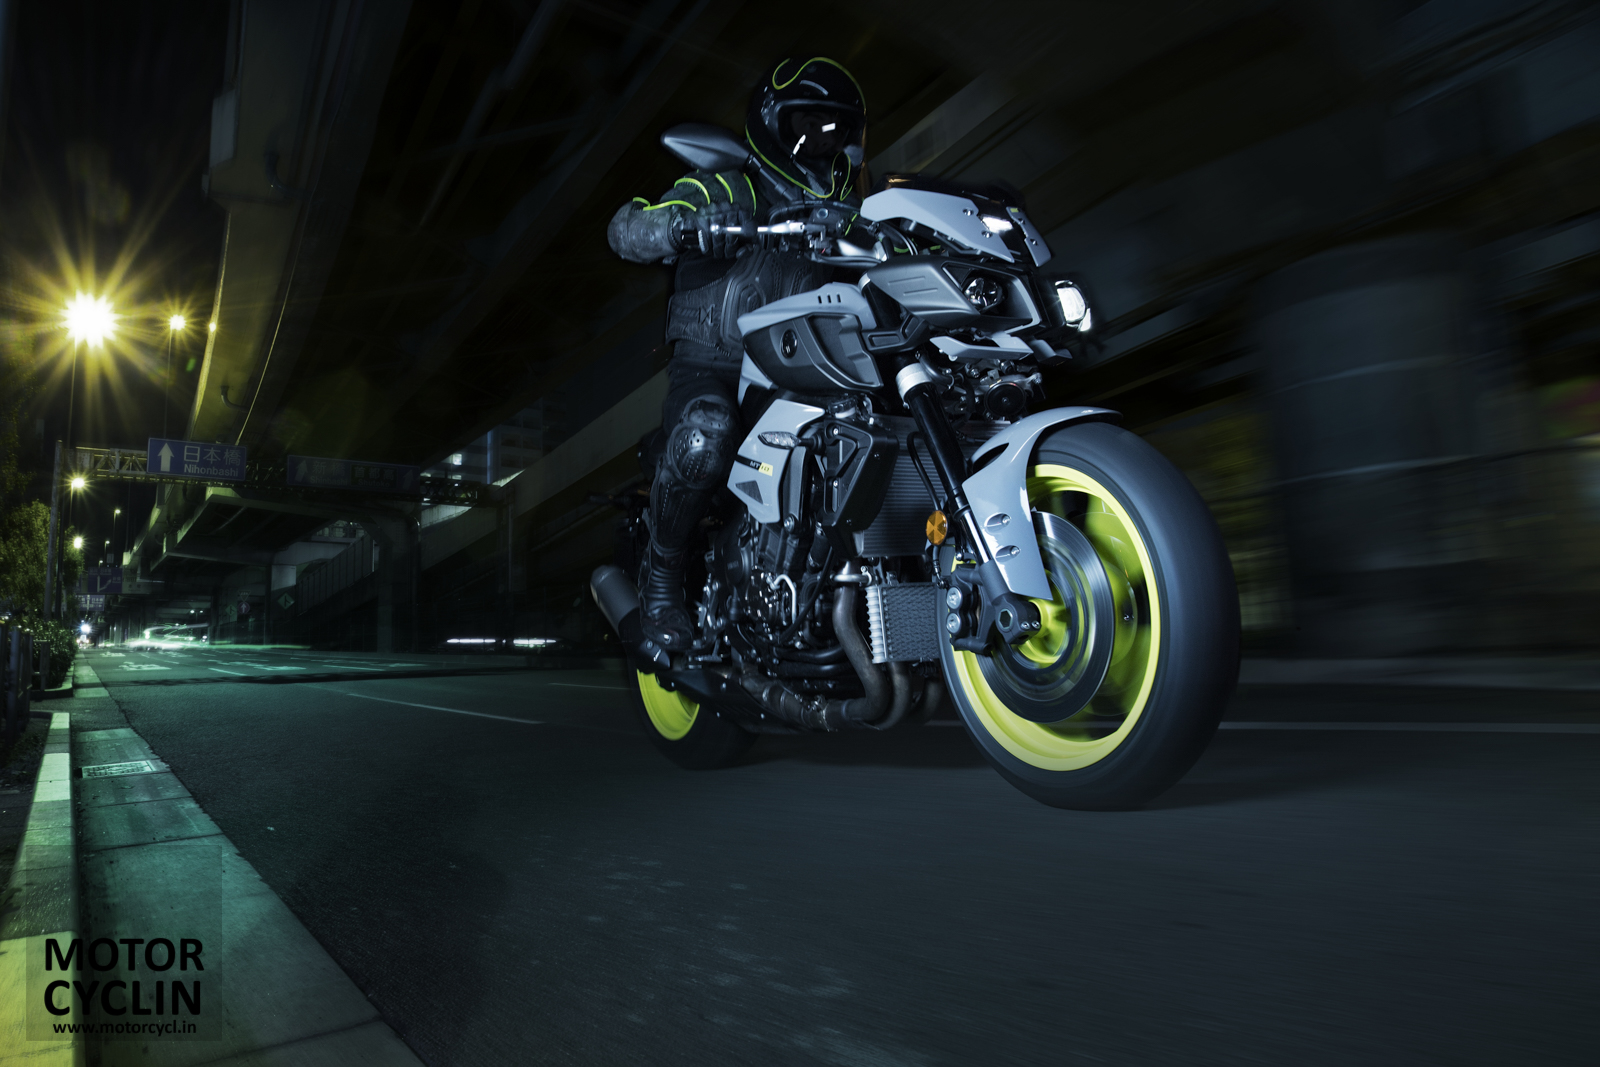 Yamaha MT-10 riding impressions